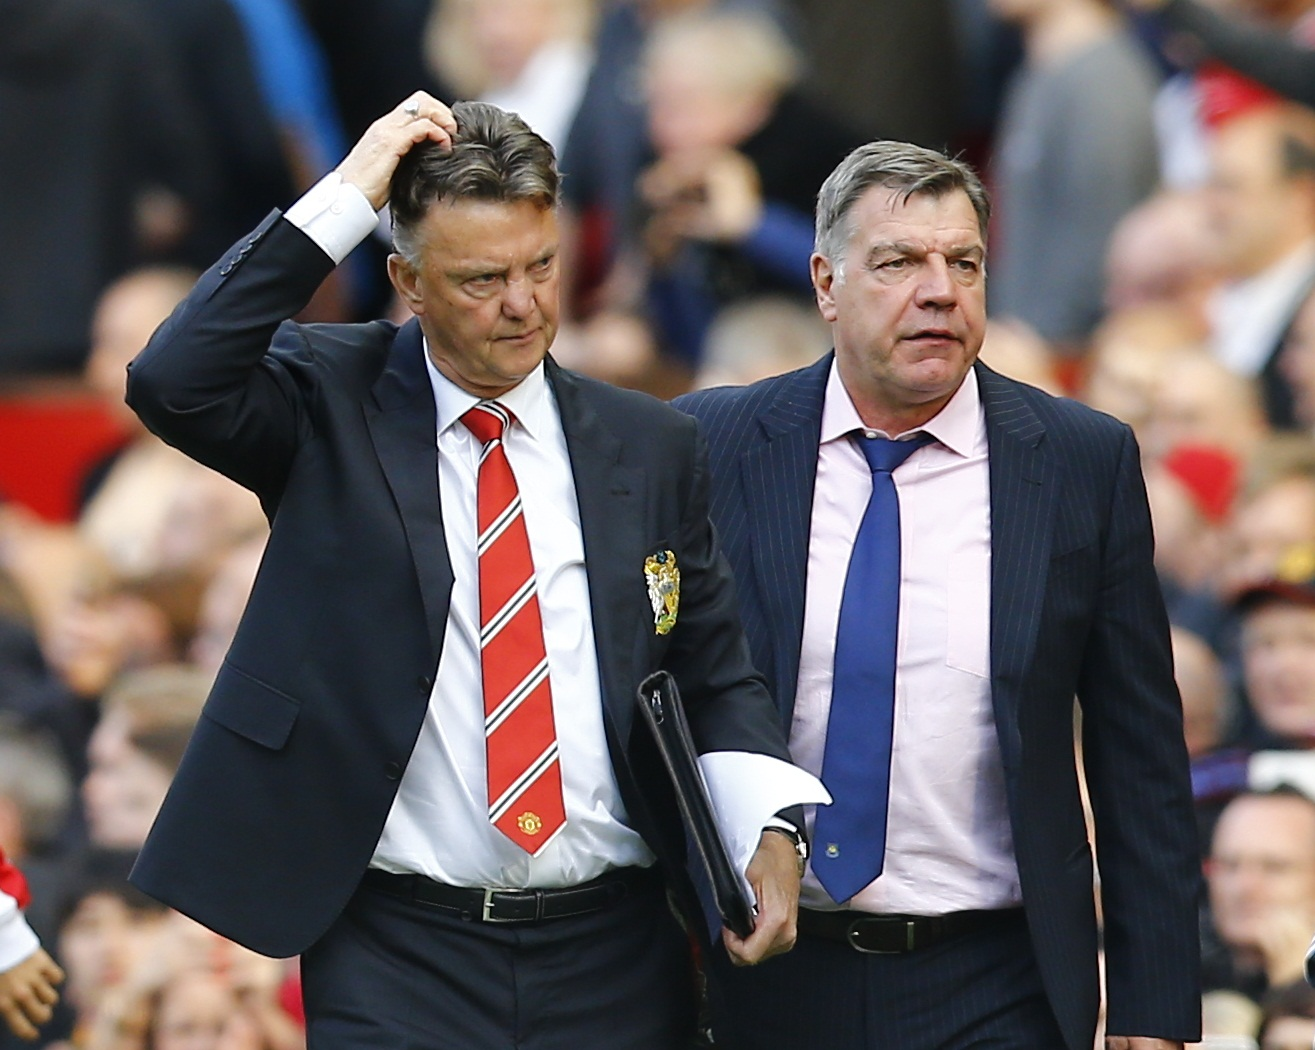 Sam Allardyce's long-ball jibe got under the skin of Louis van Gaal